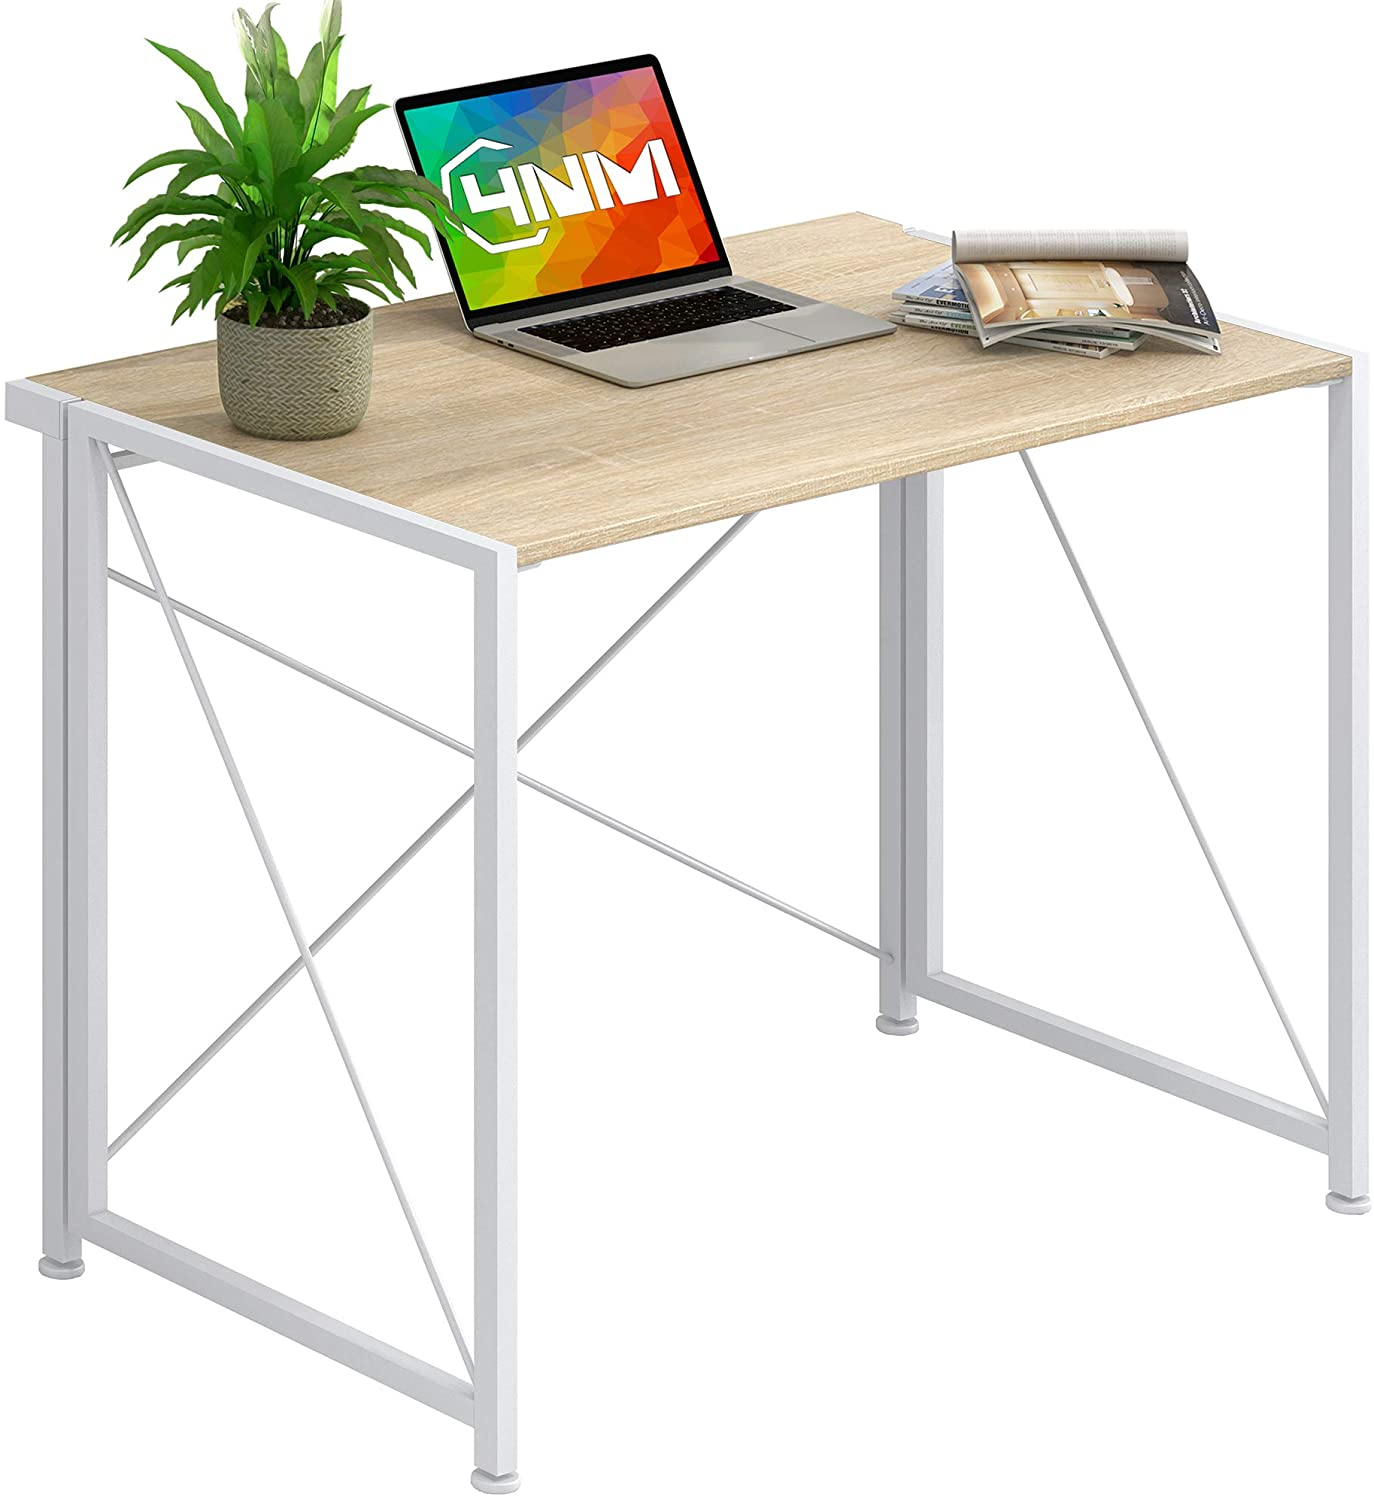 foldable office table with a laptop and a plant